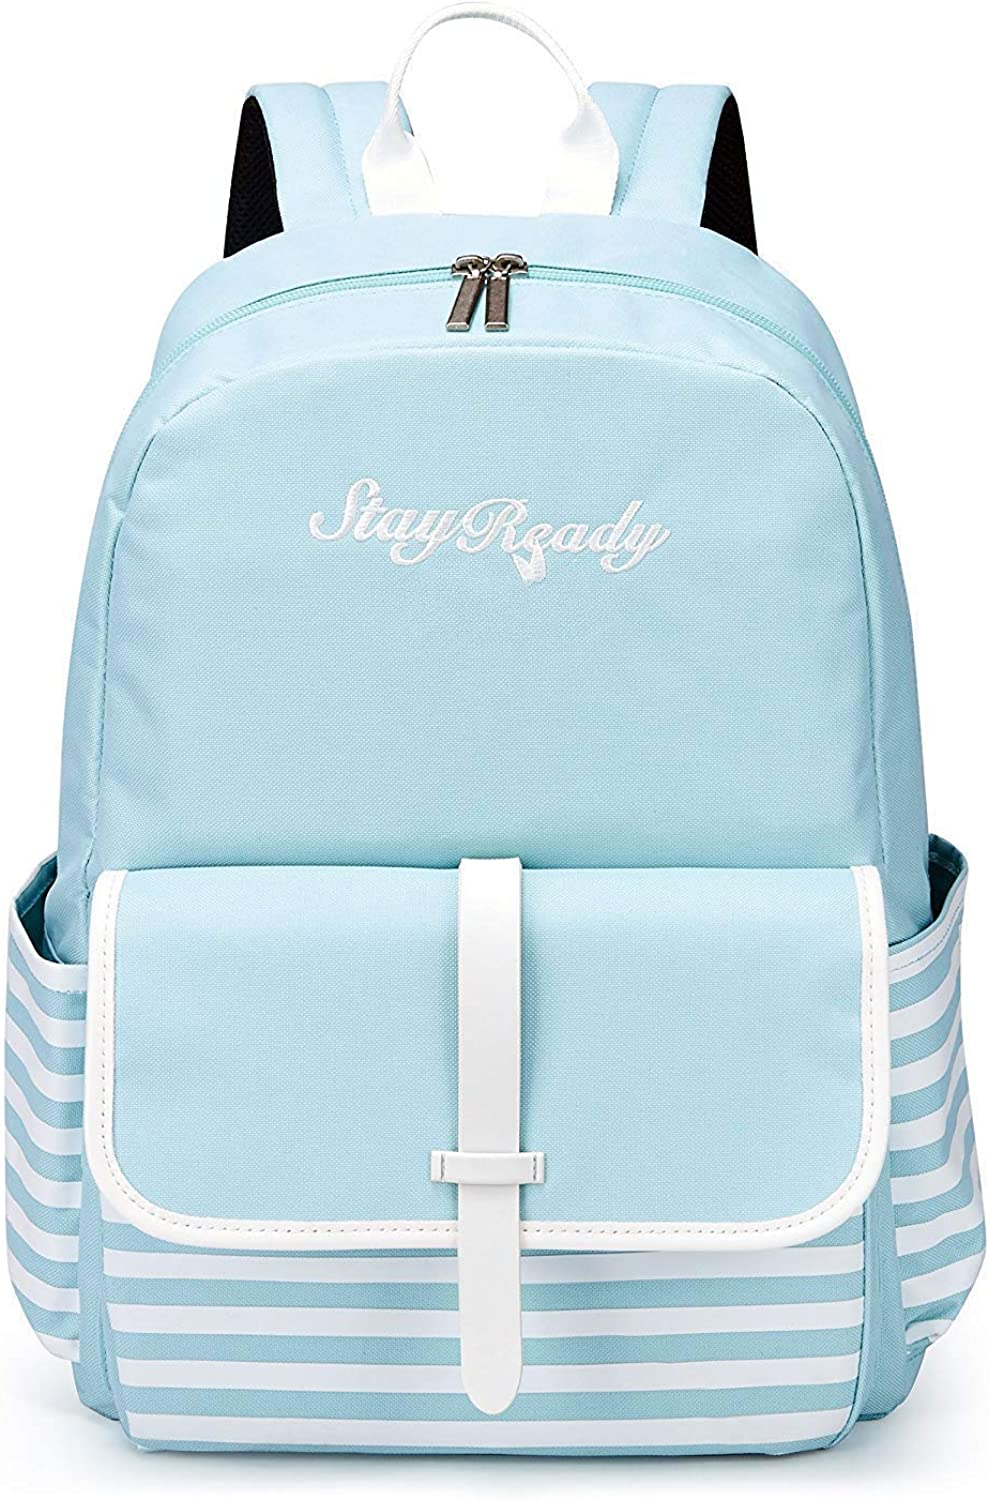 LBYMYB Fashion Wild Bag White Striped Casual Canvas Backpack kids's backpack (color   Light bluee)